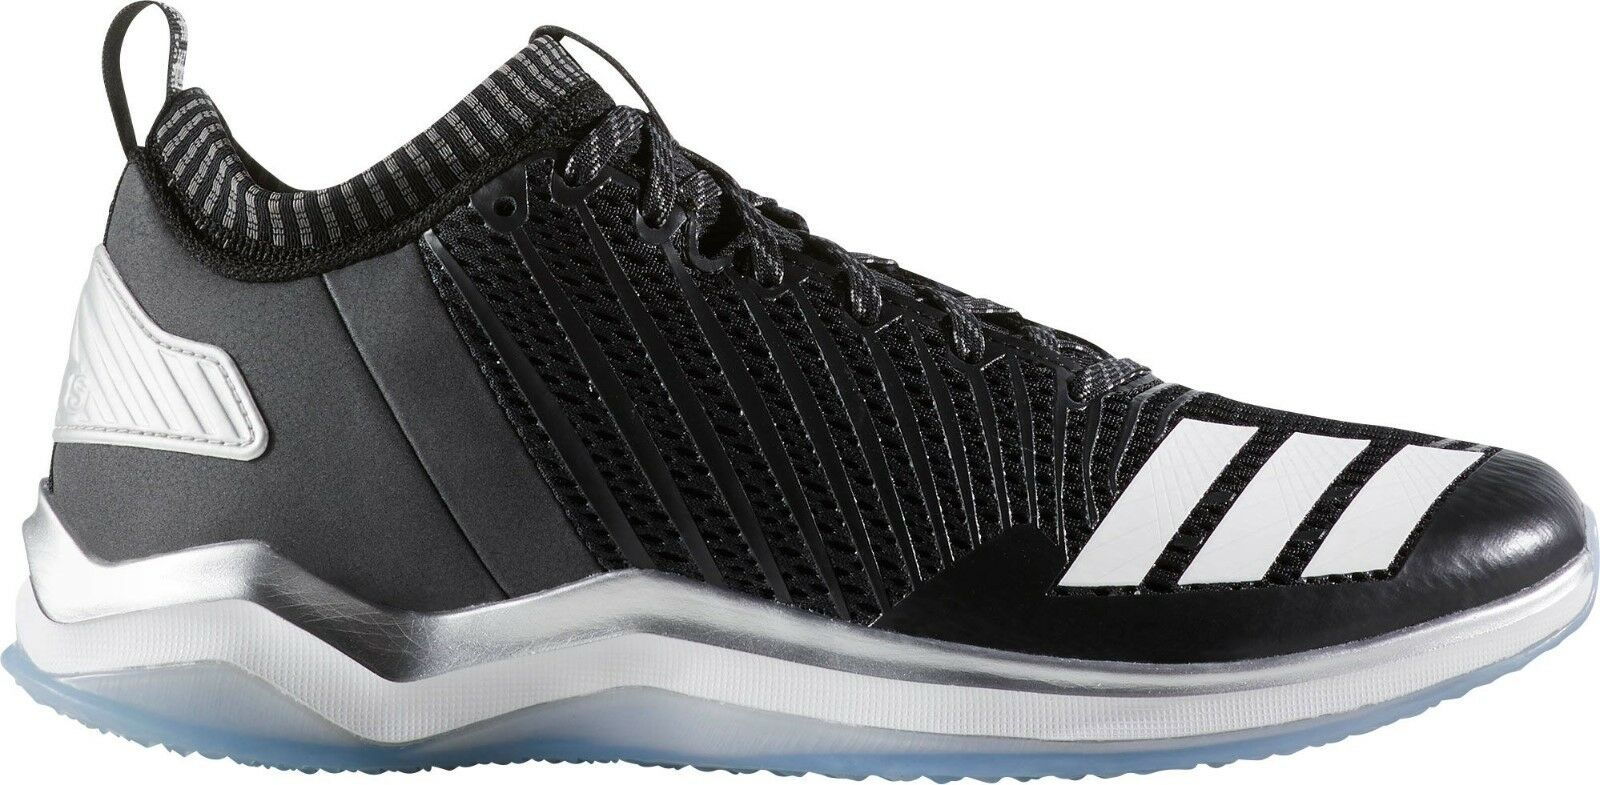 MENS ADIDAS ICON TRAINER BLACK / WH BASKETBALL SHOES MEN'S SELECT YOUR SIZE